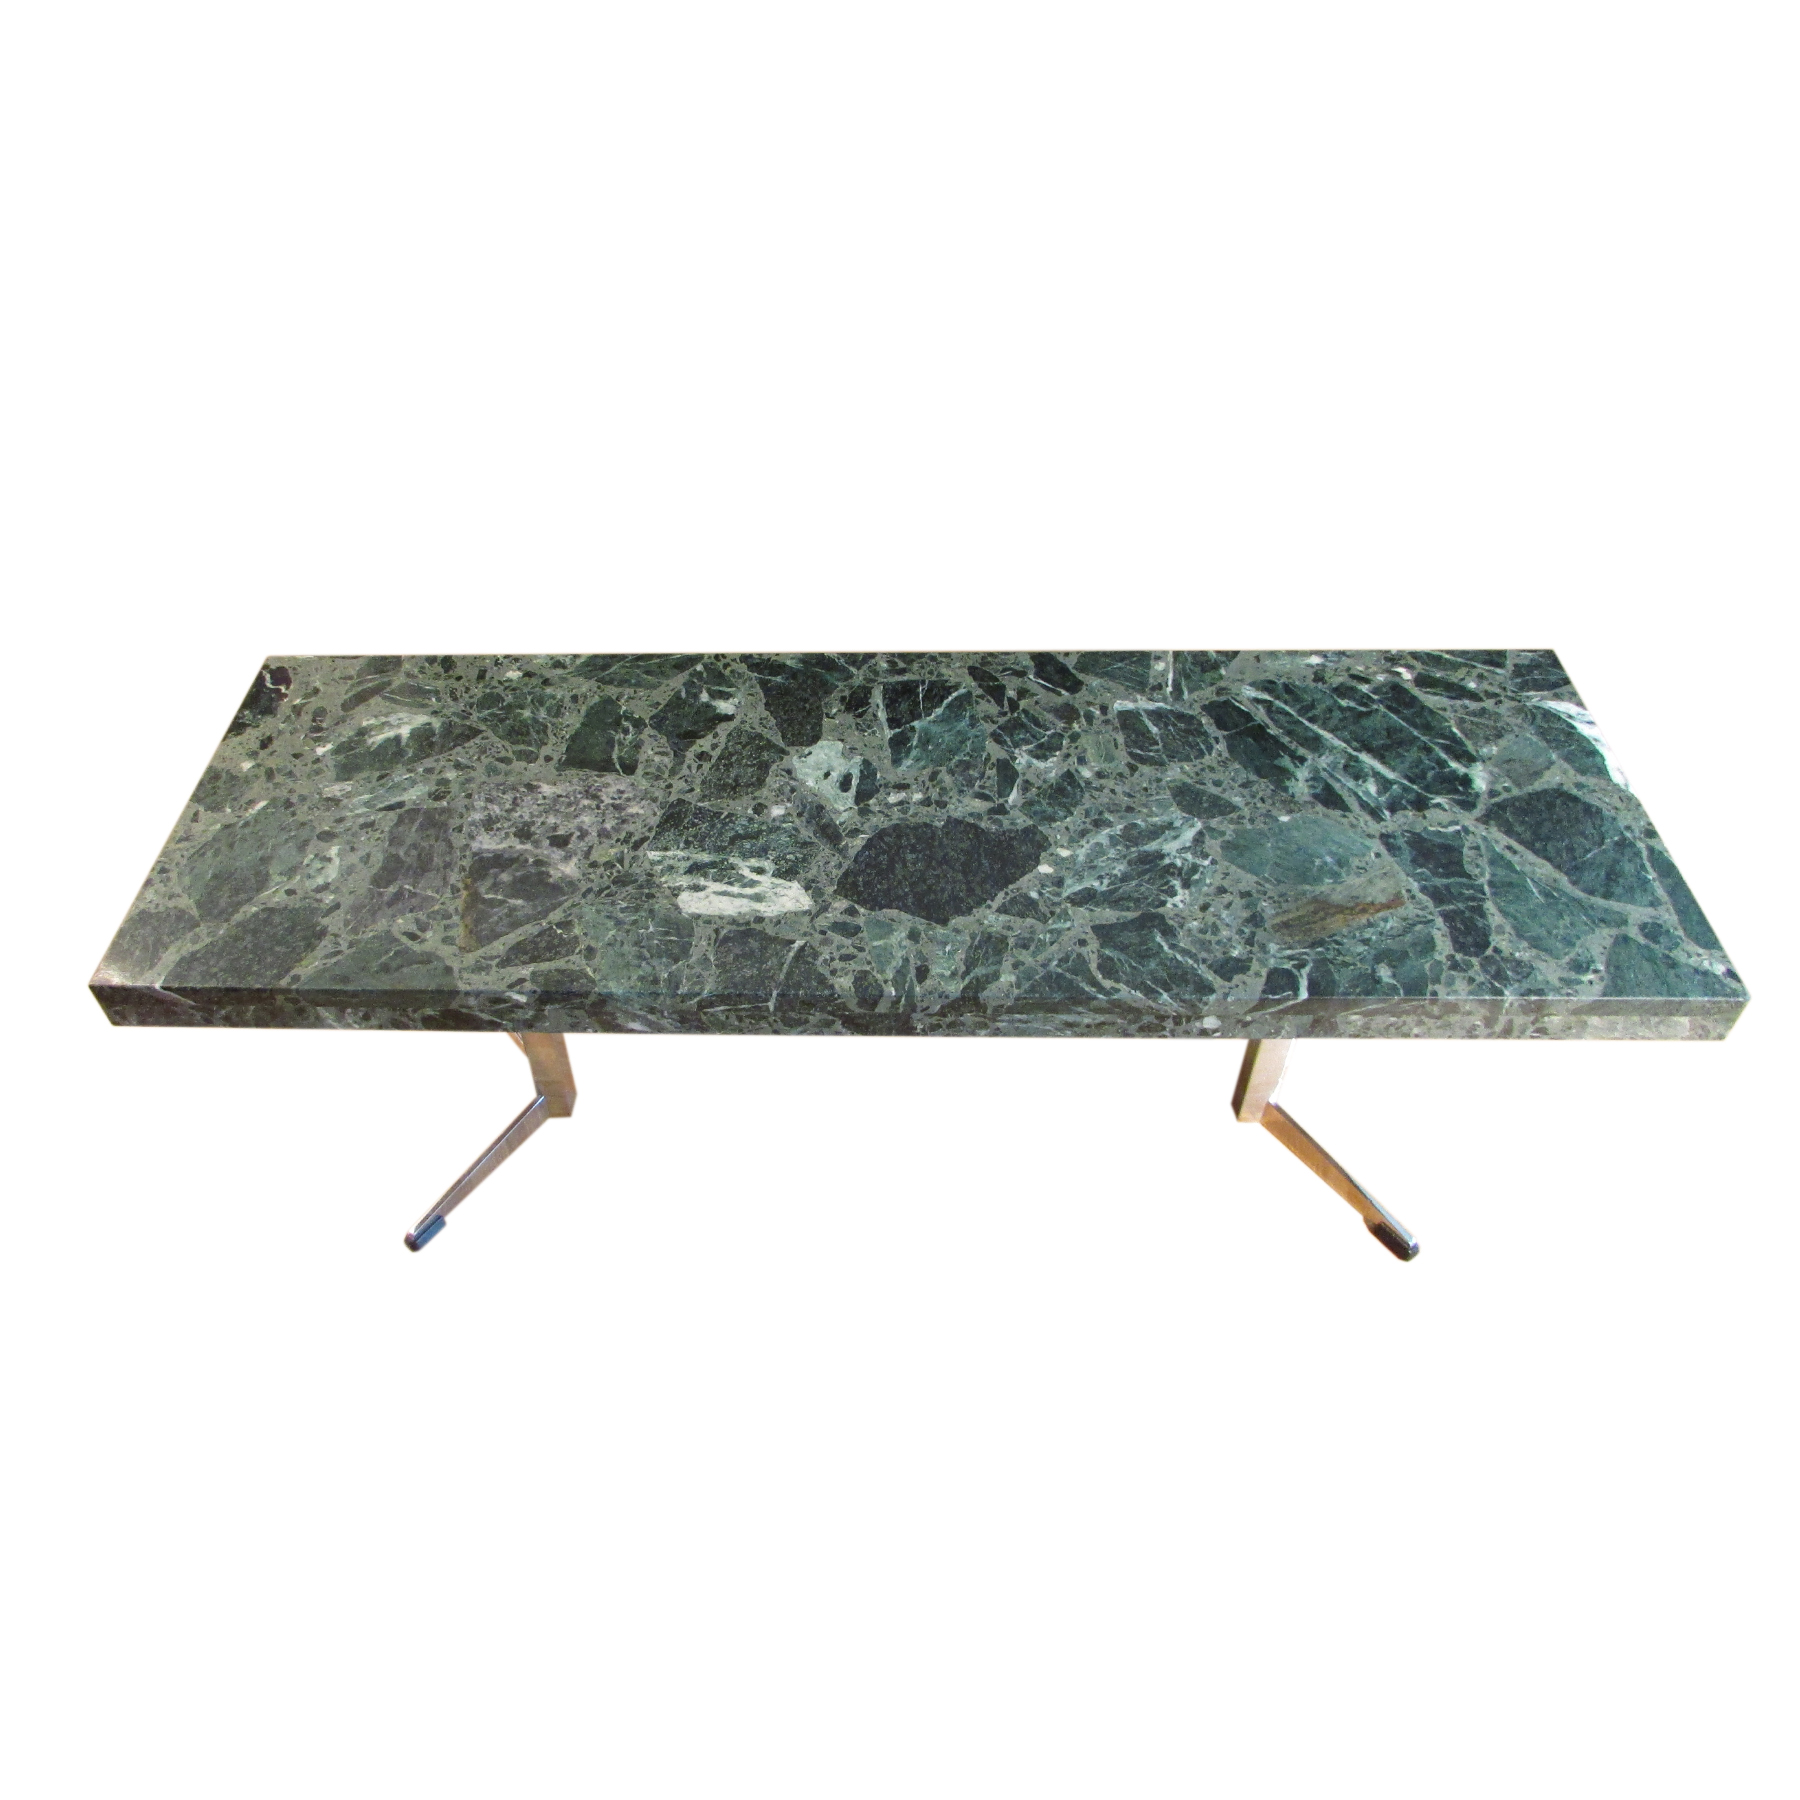 Green Marble Coffee Table Artichoke Vintage Furniture